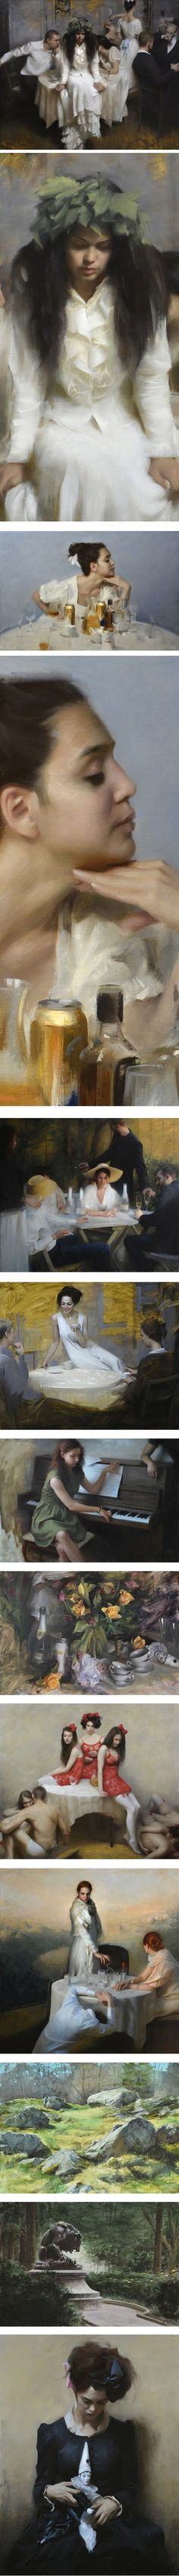 Nick Alm   Lines and Colors :: a blog about drawing, painting, illustration, comics, concept art and other visual arts